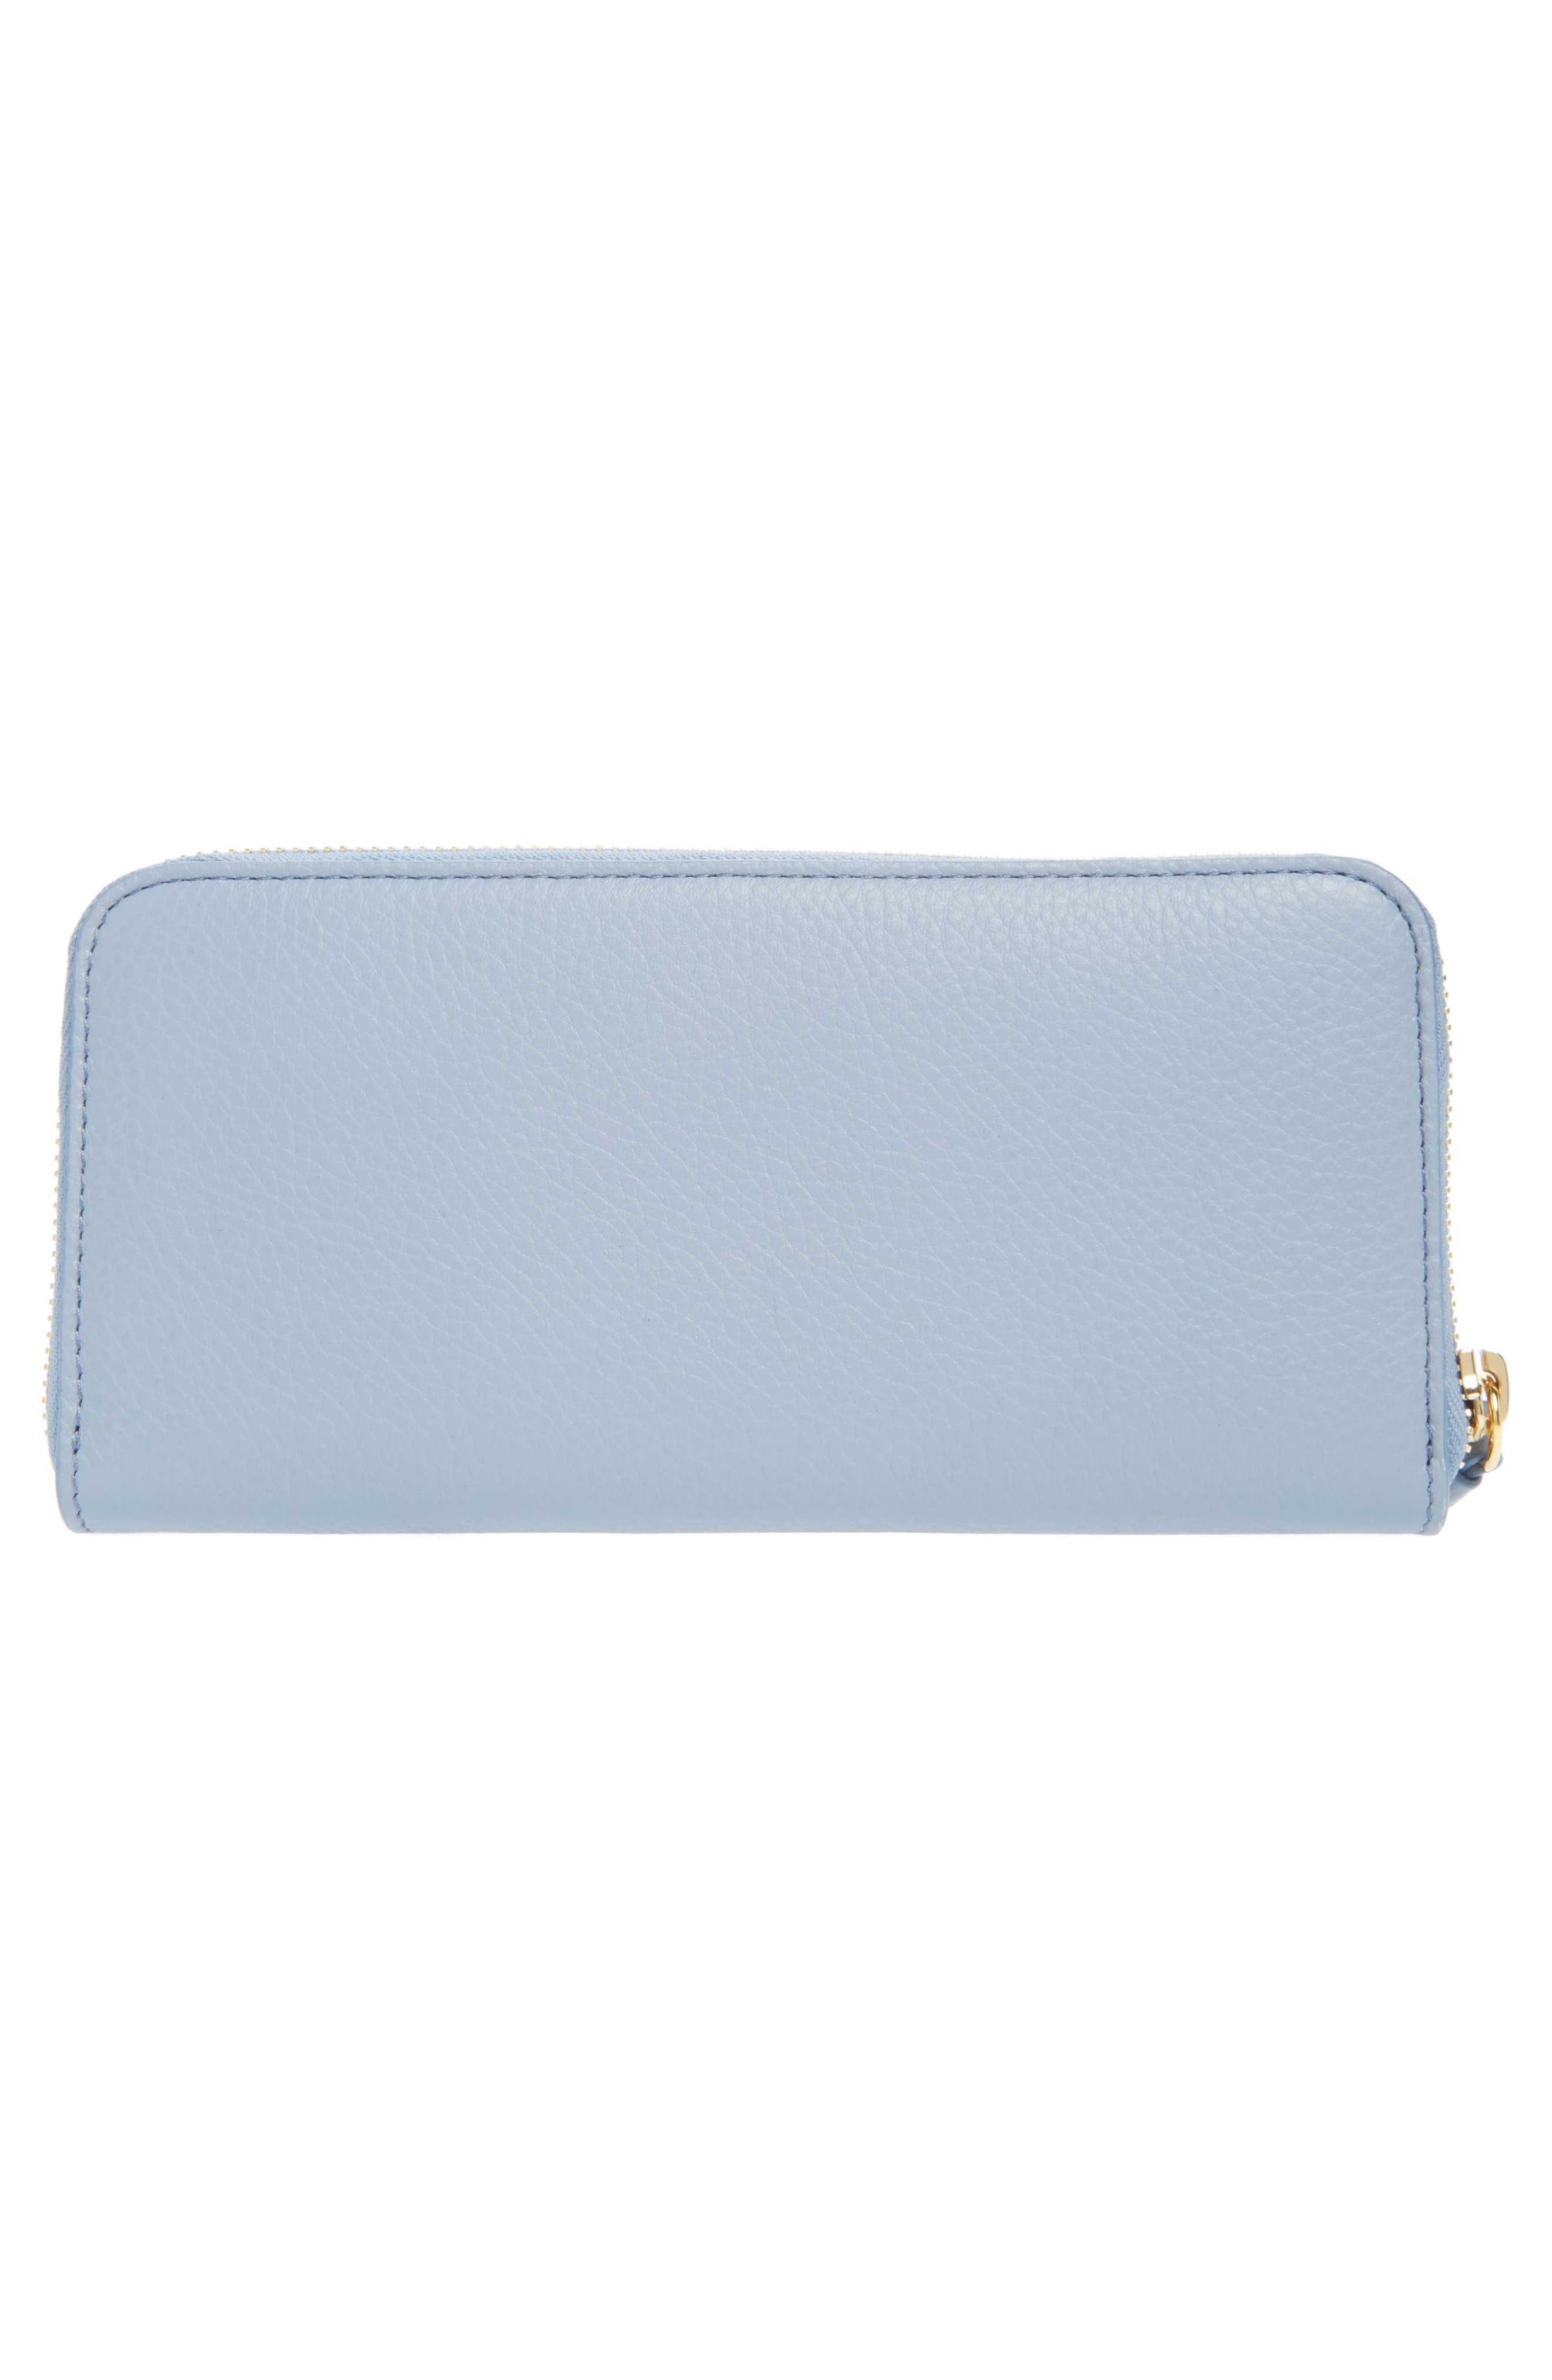 Messages Love Zip Around Leather Wallet,                             Alternate thumbnail 3, color,                             WASHED BLUE